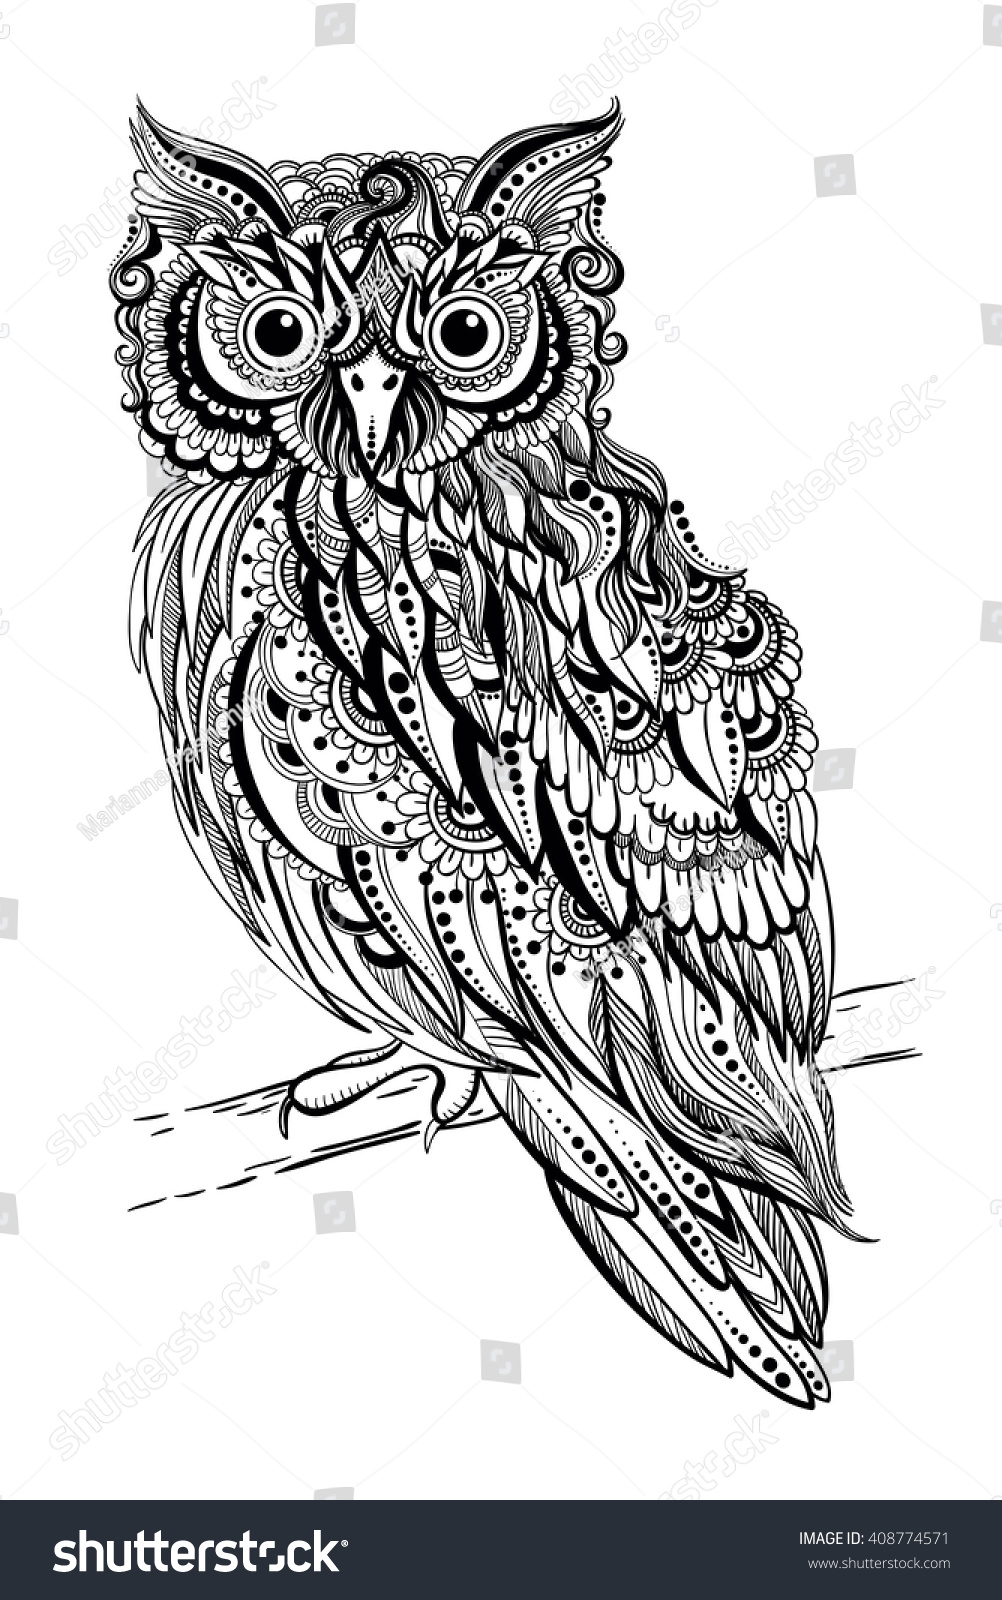 tattoo owl coloring pages - photo#21